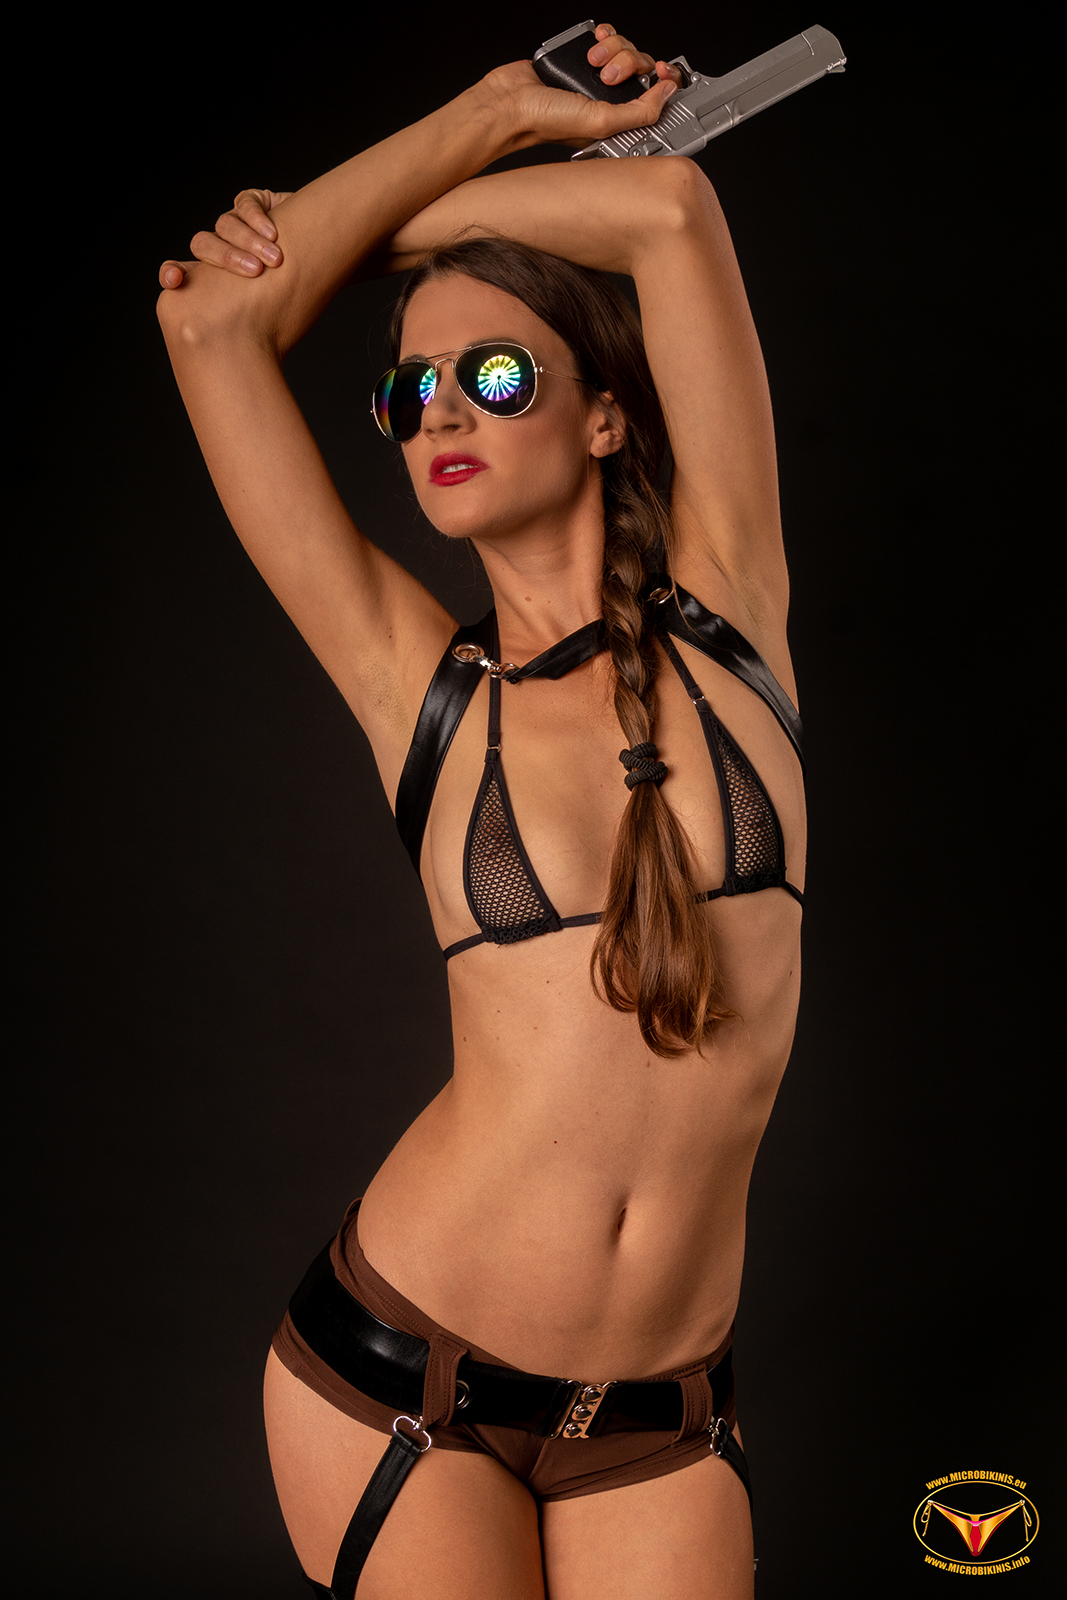 Microbikinis Bikinigirl, Micro Bikinis Model Lauren Crist Bikinigirl from the Czech Republic